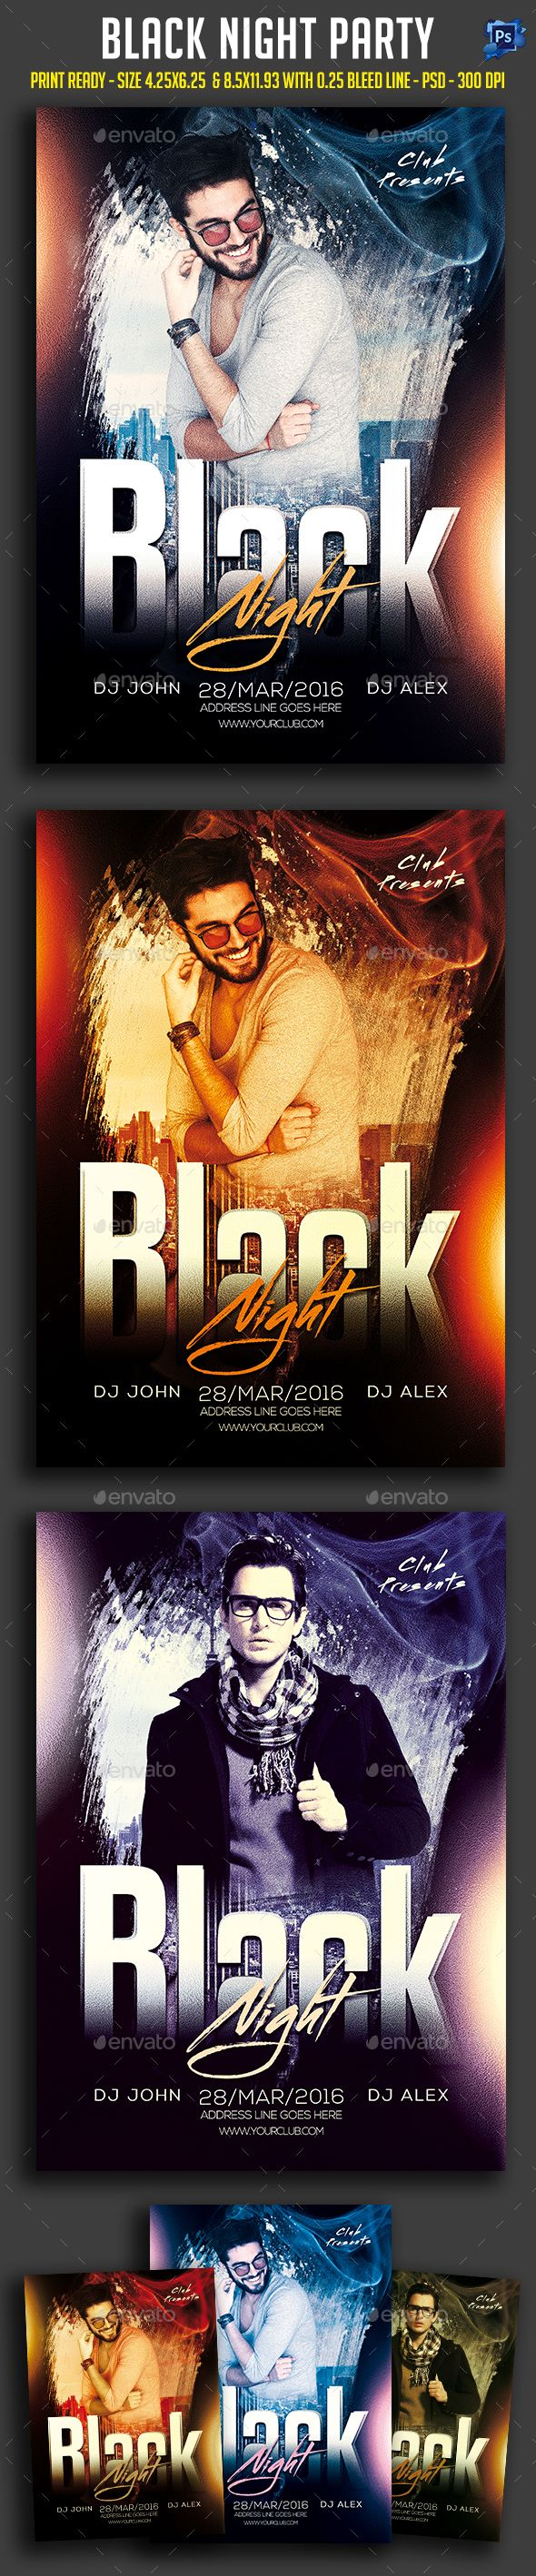 black night party flyer template psd download here http